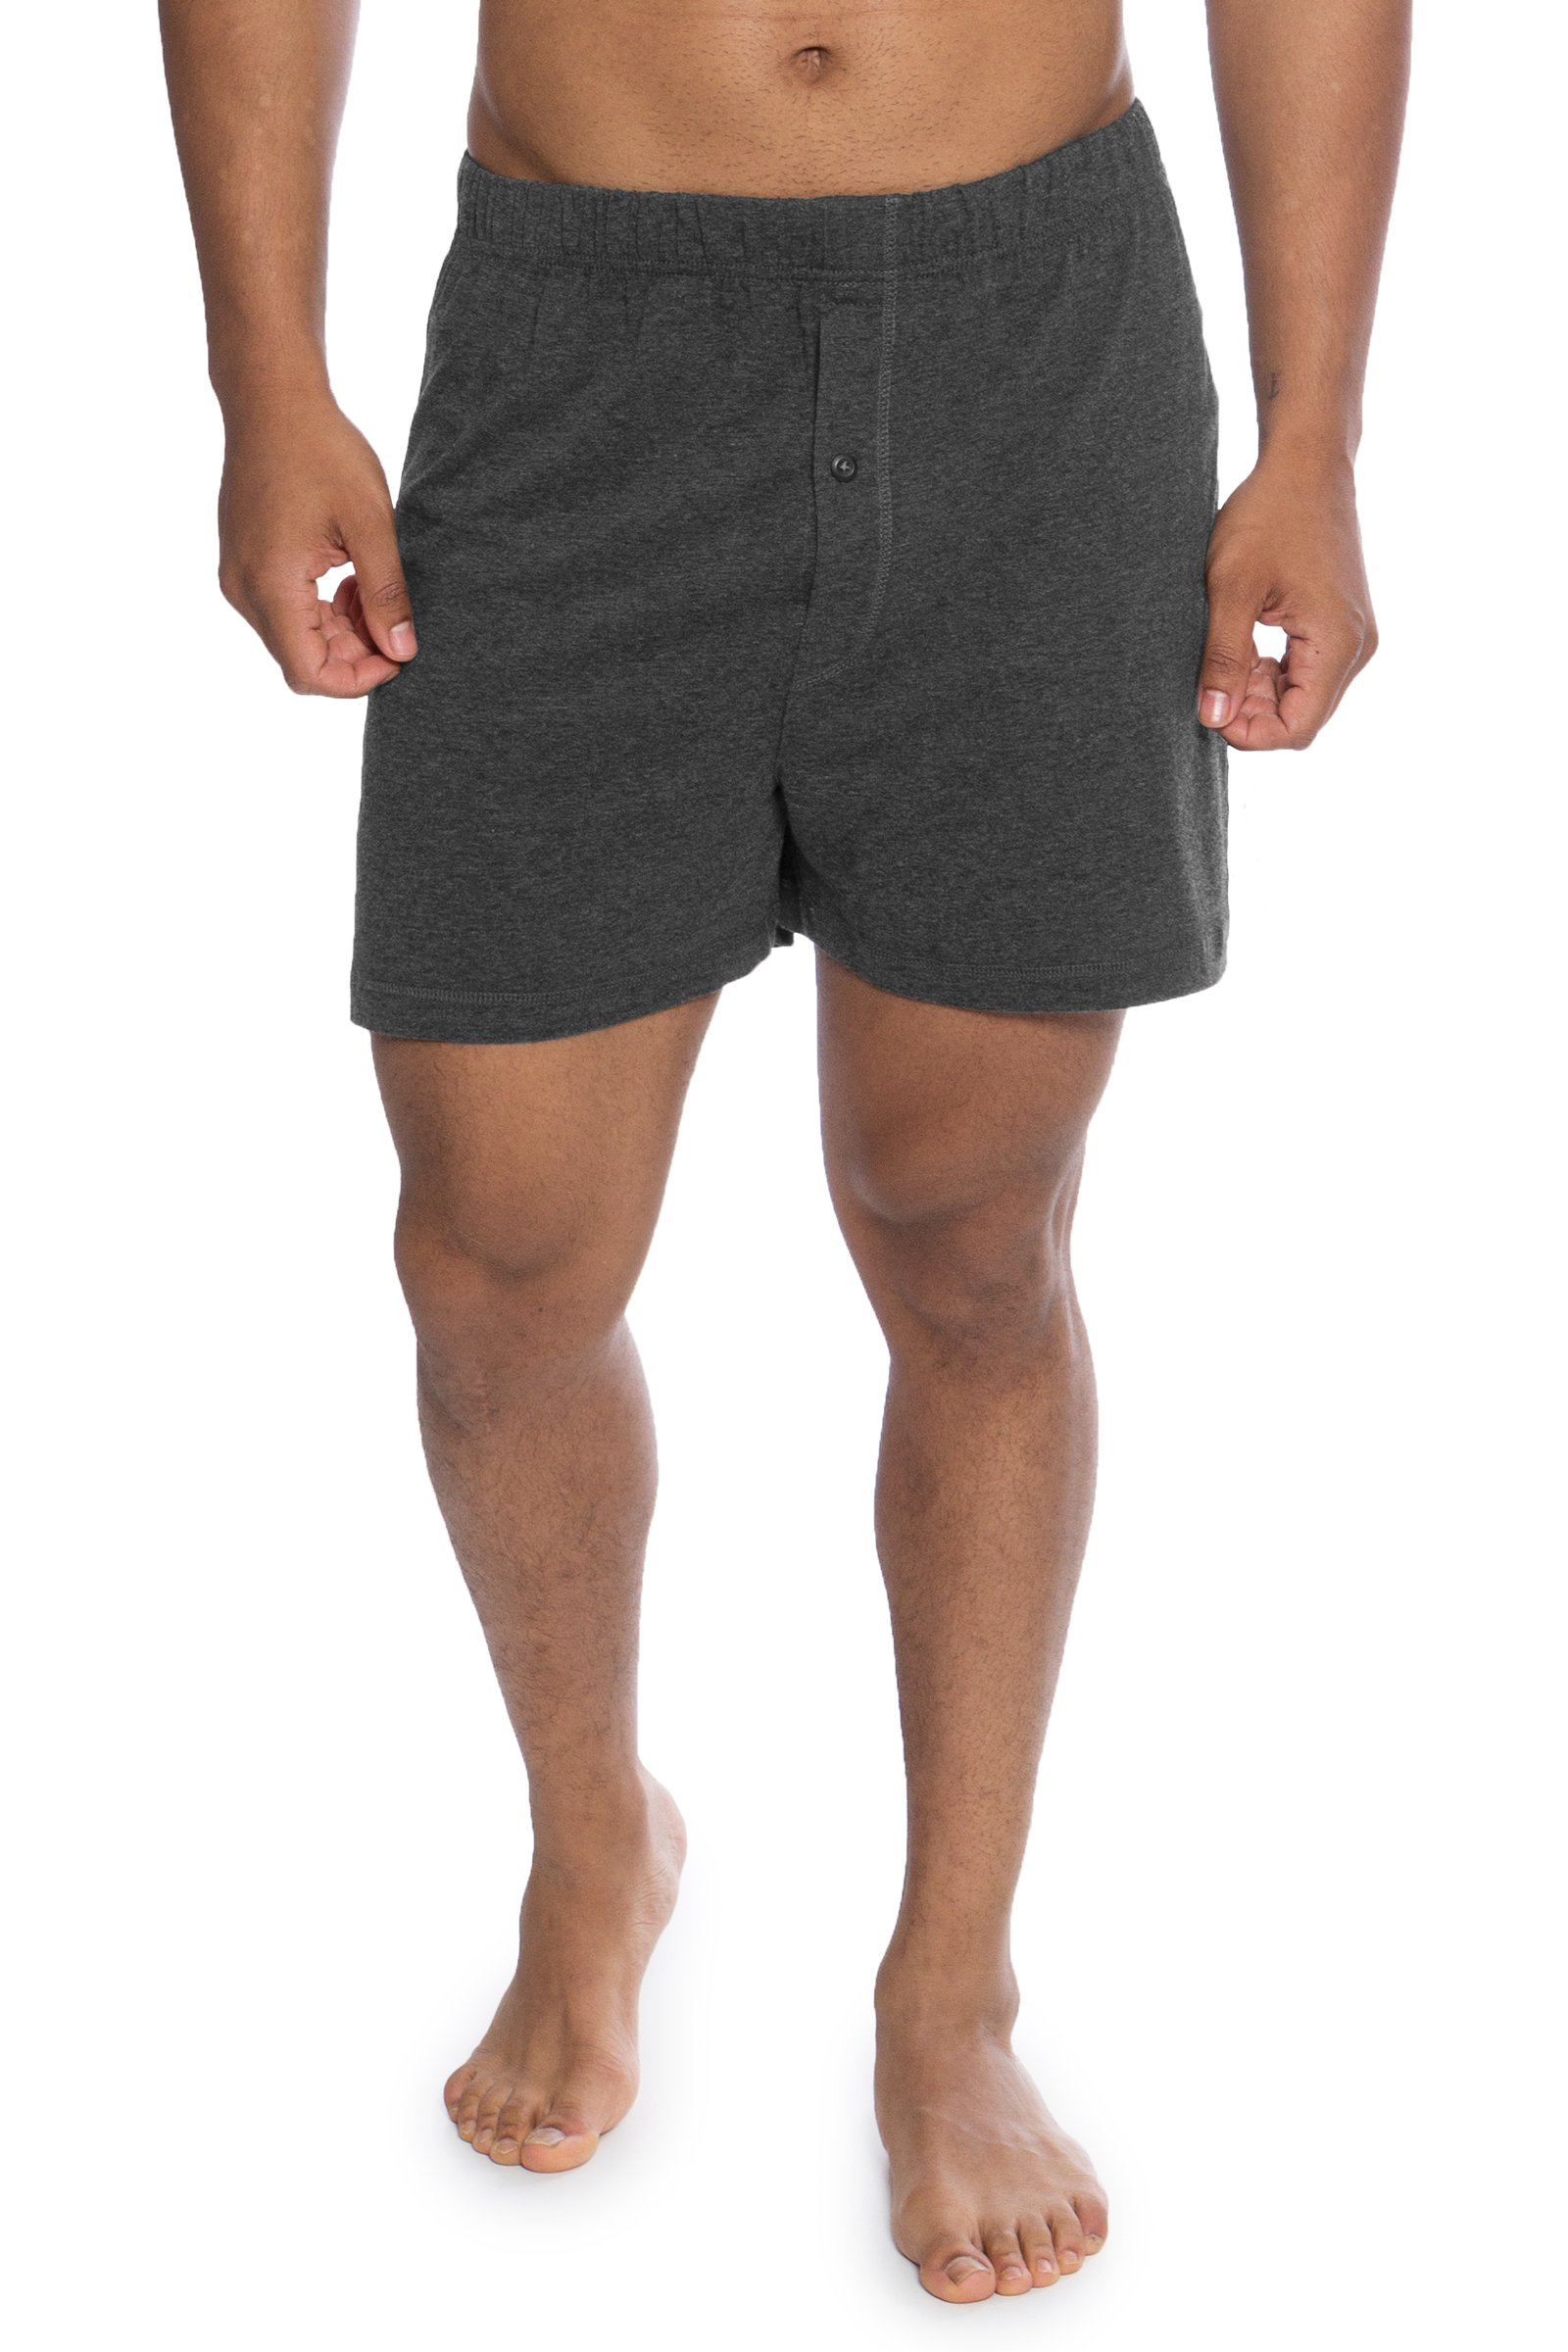 Men's Boxer Shorts - Single Pack Bamboo Viscose Underwear by Texere (Sancus, Heather Gray, Medium) Great Gifts for Husband Boyfriend Fiance MB6104-2G3-M